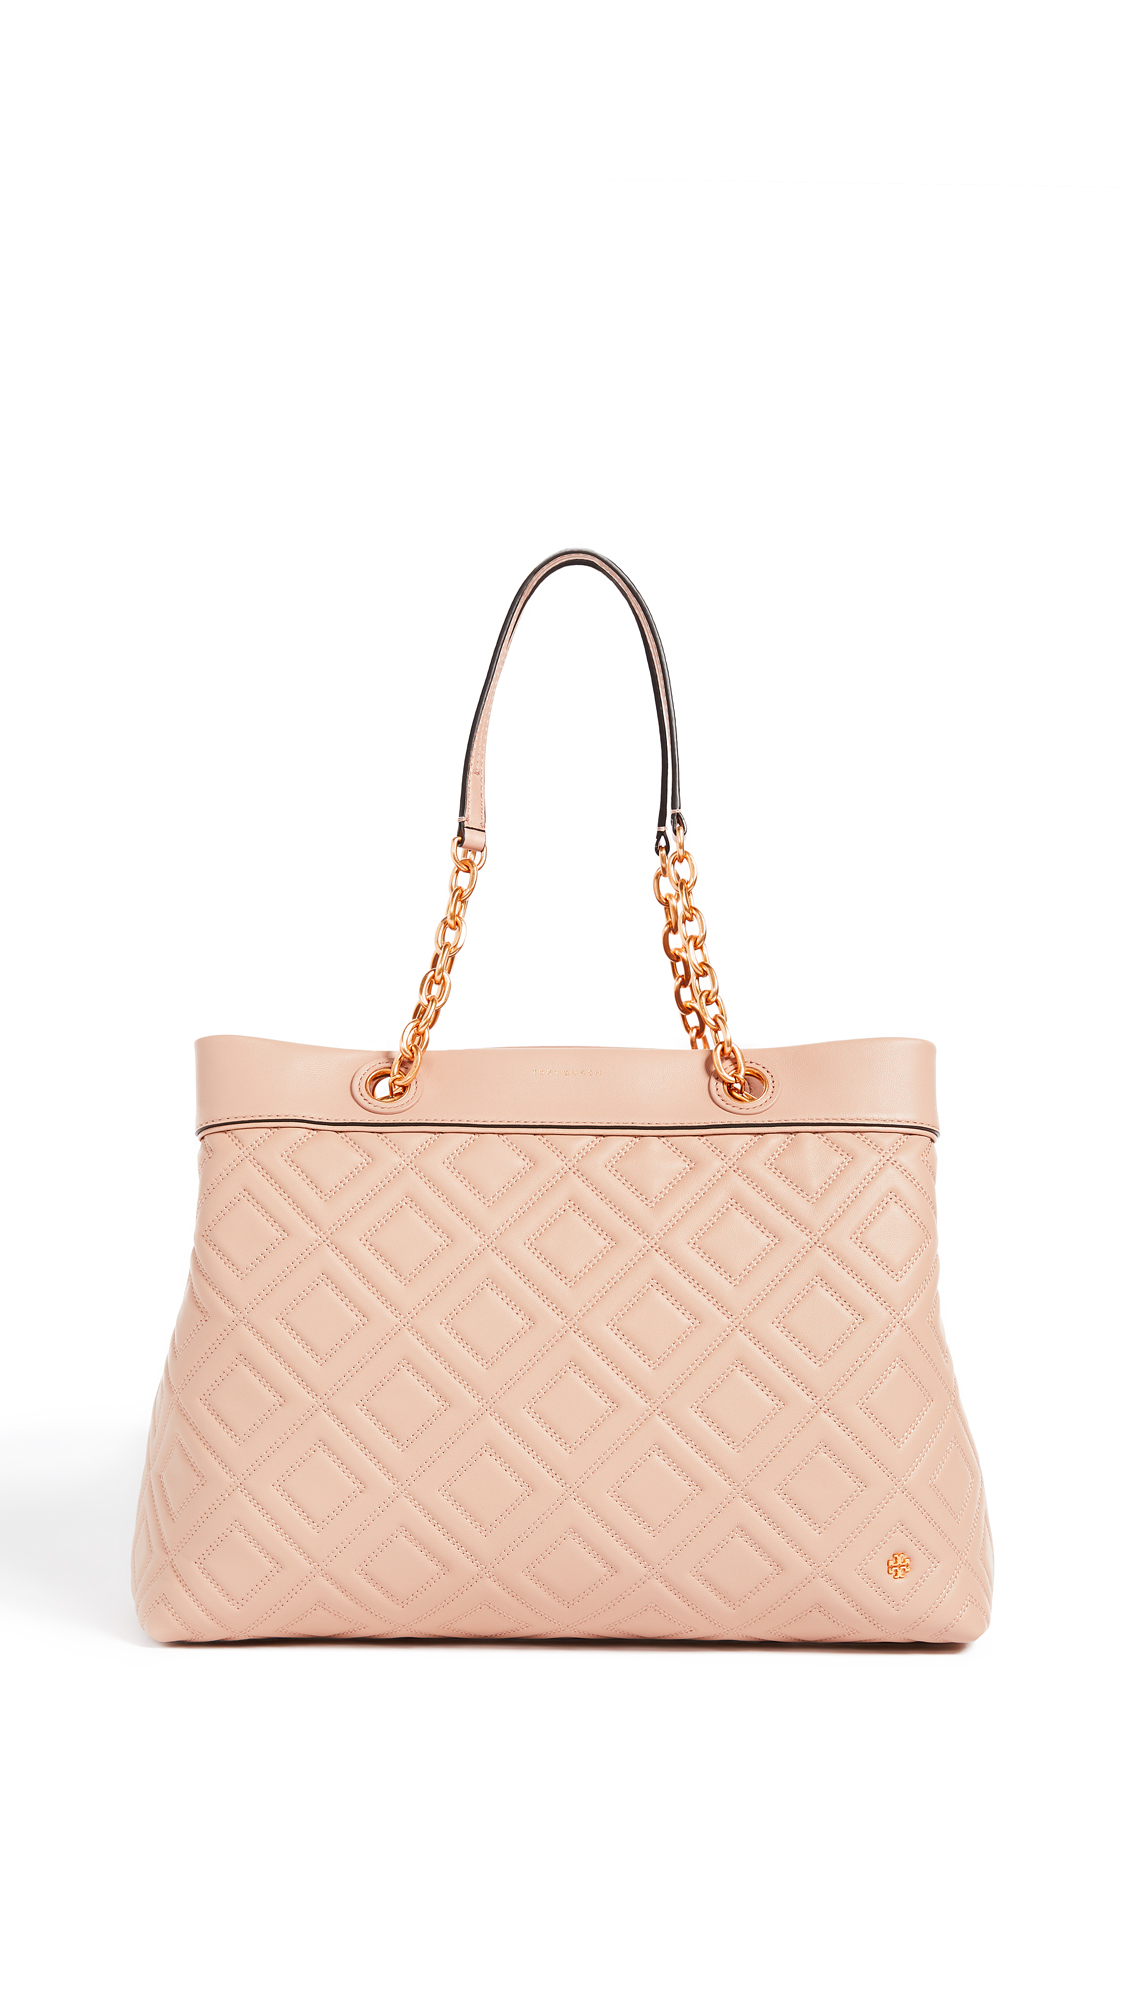 Tory Burch Fleming Triple Compartment Tote - New Mink